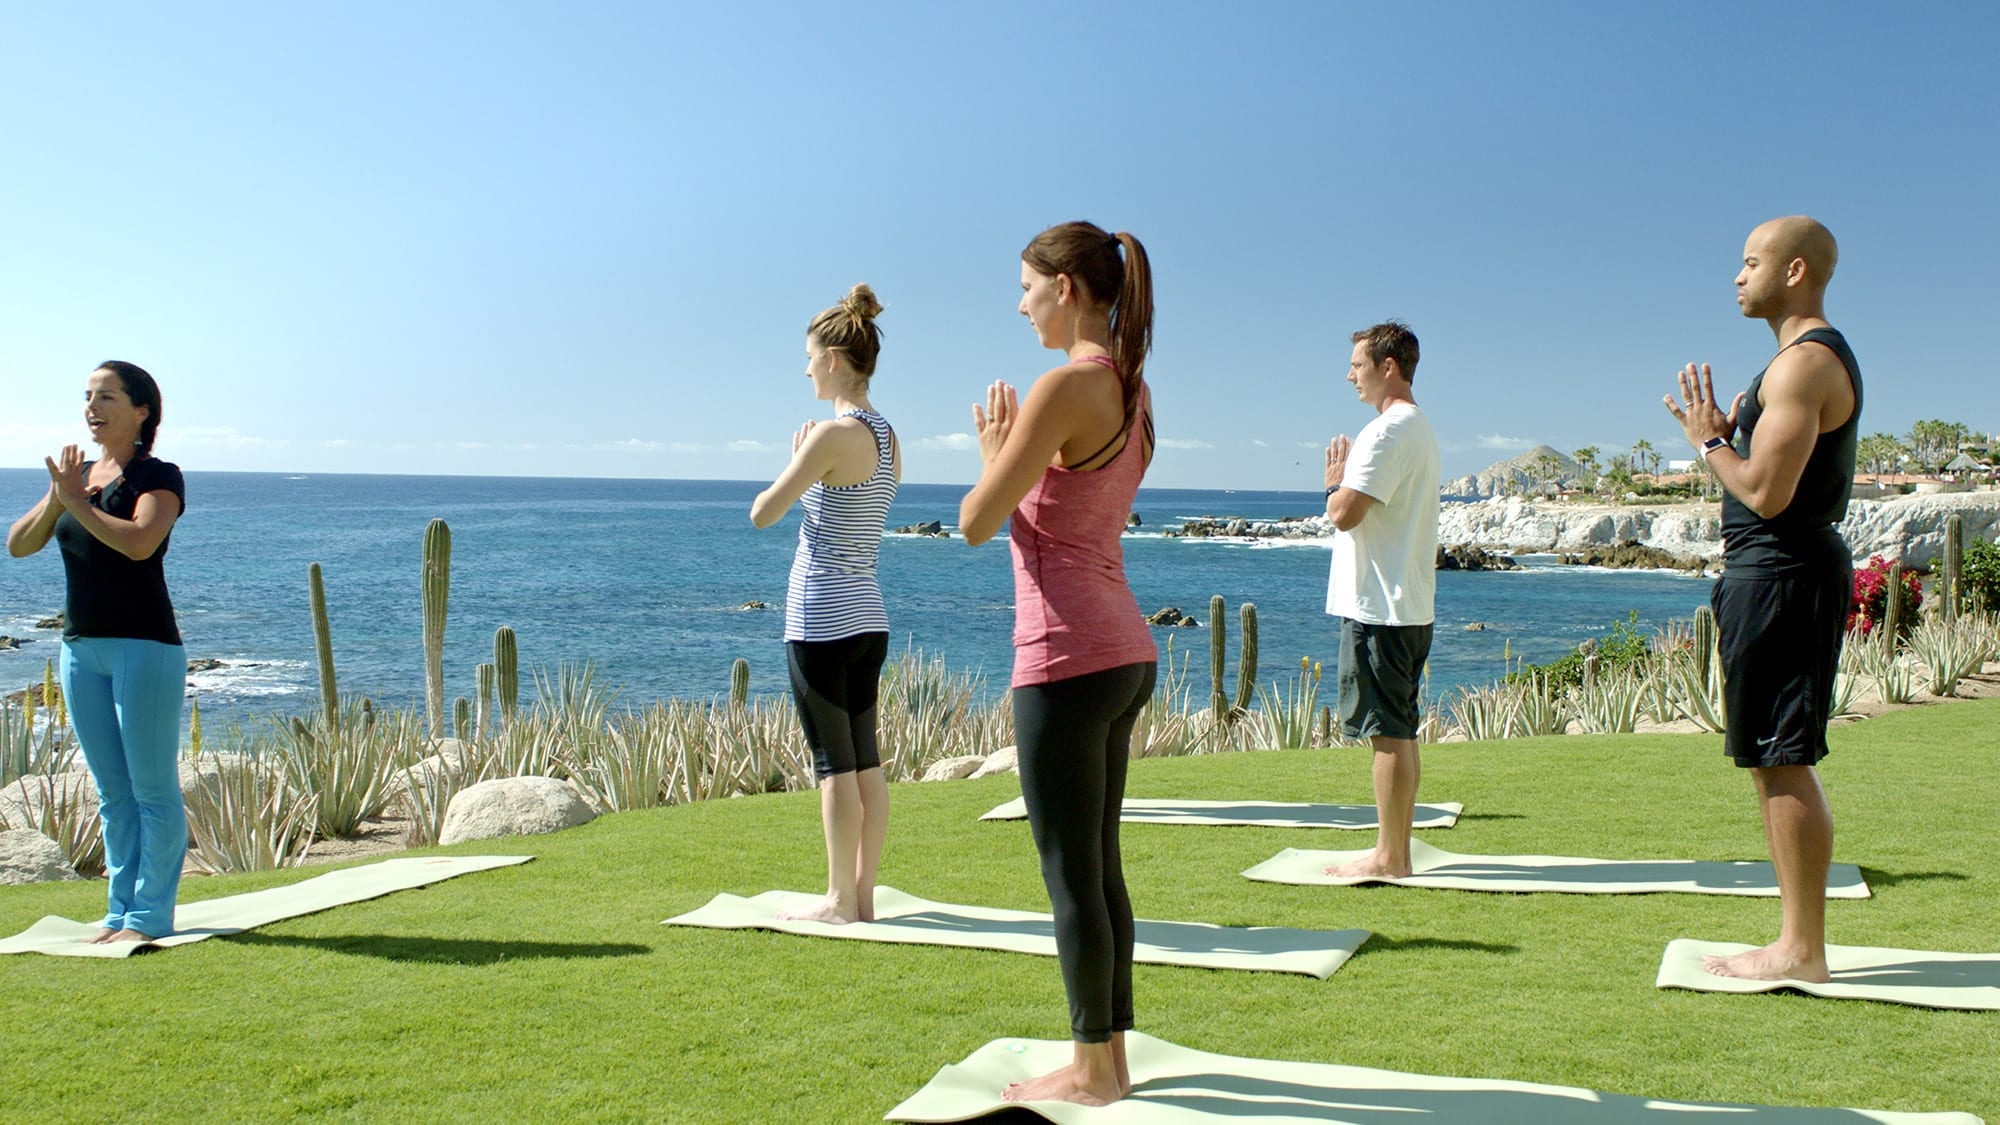 People at yoga class